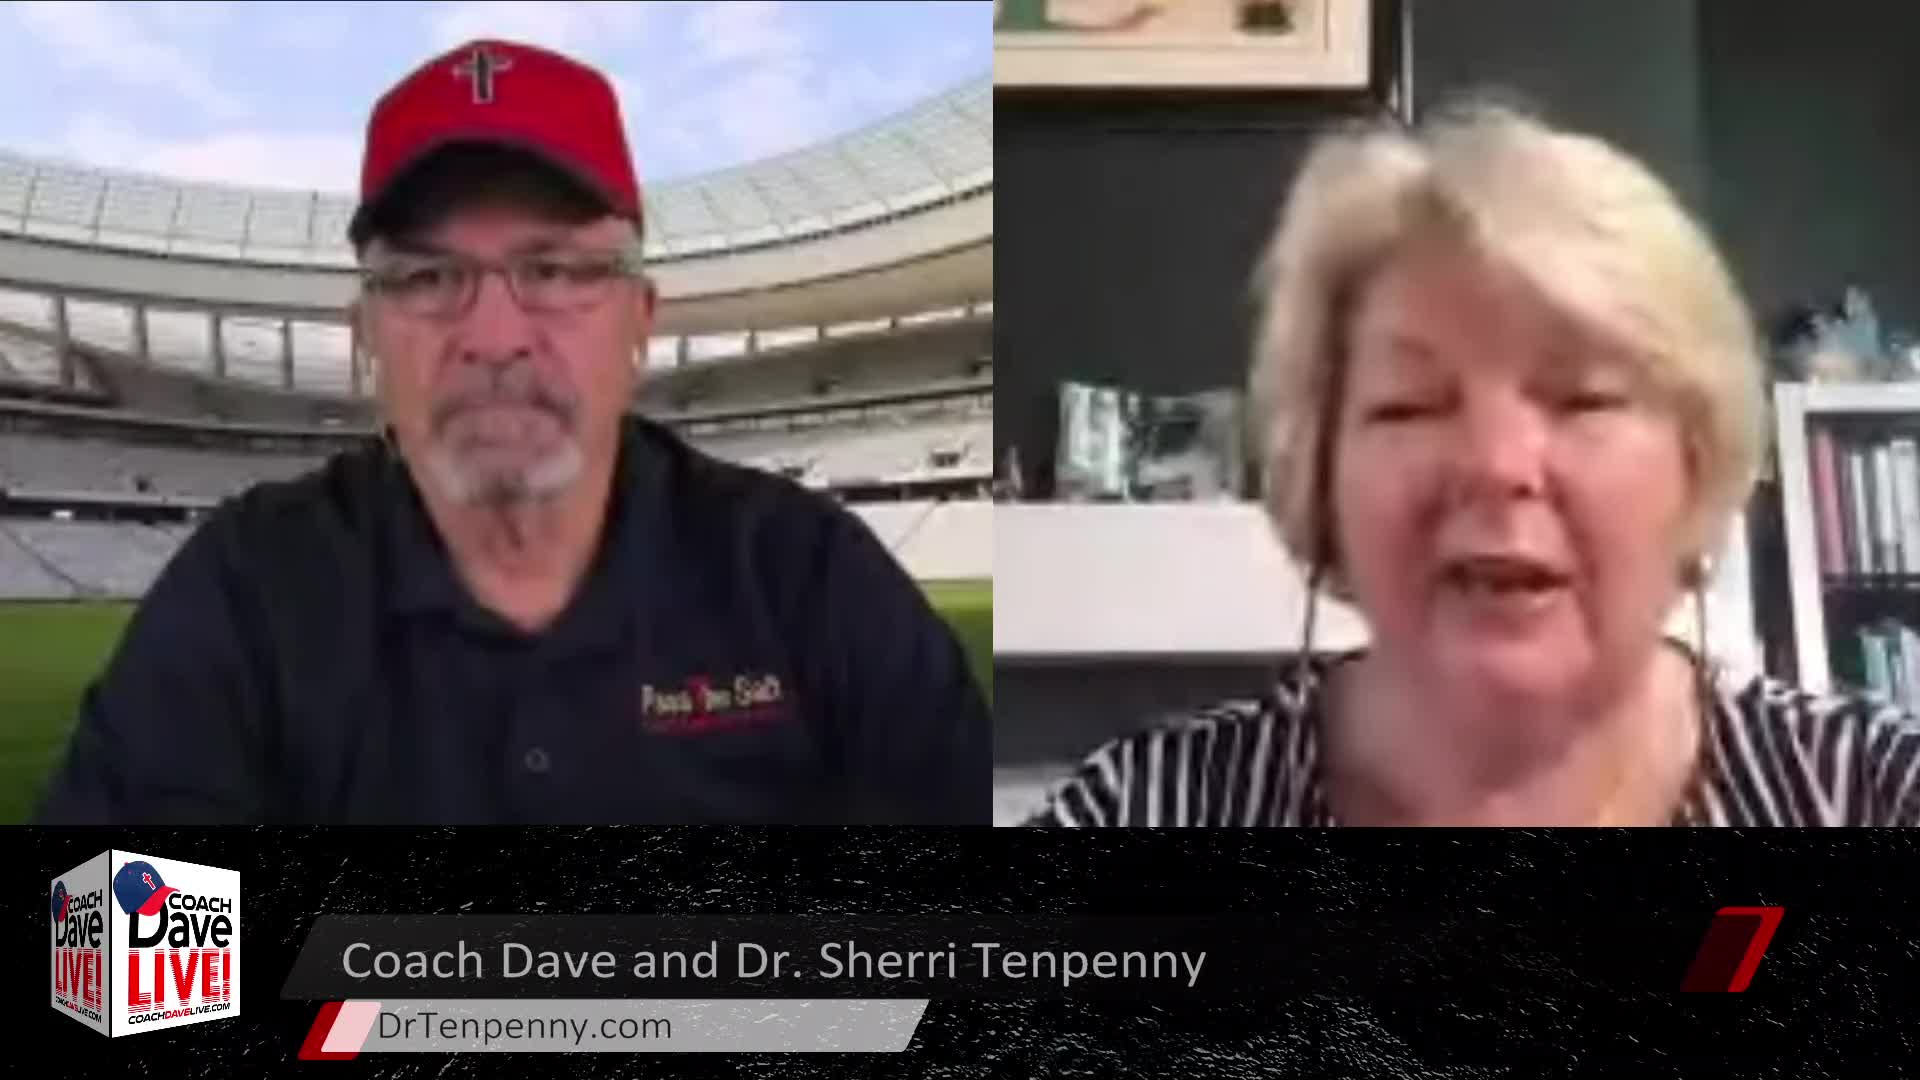 Coach Dave LIVE   5-21-2021   SPECIAL GUEST DR. SHERRI TENPENNY - AUDIO ONLY